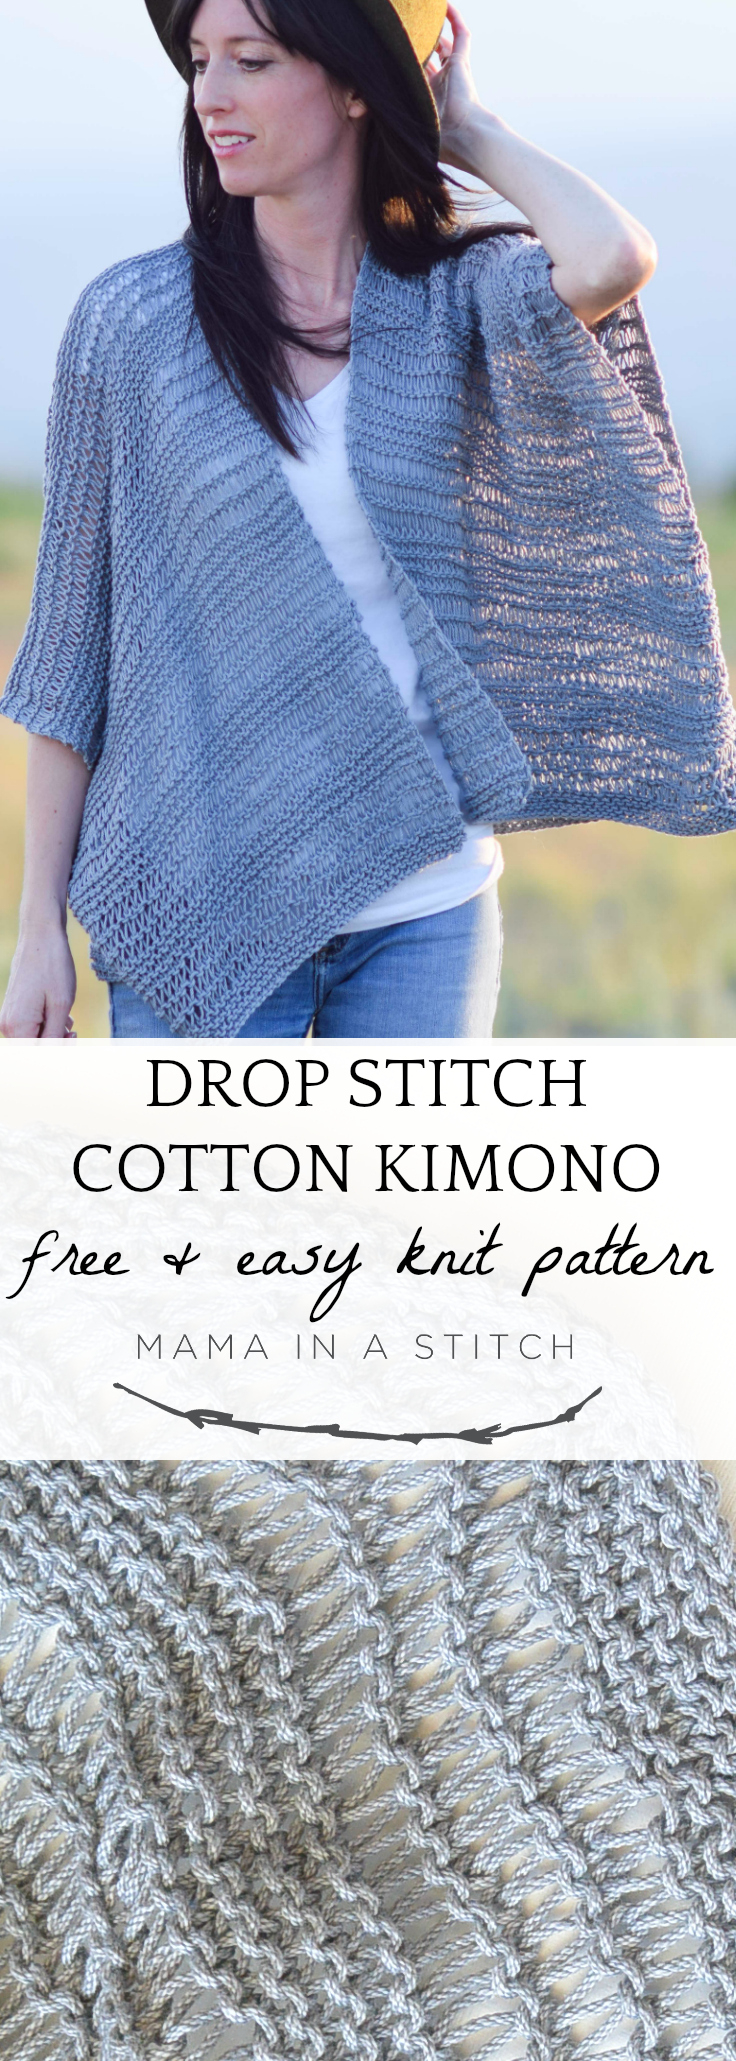 Kimono Sweater Knitting Pattern Drop Stitch Cotton Easy Kimono Knitting Pattern Mama In A Stitch